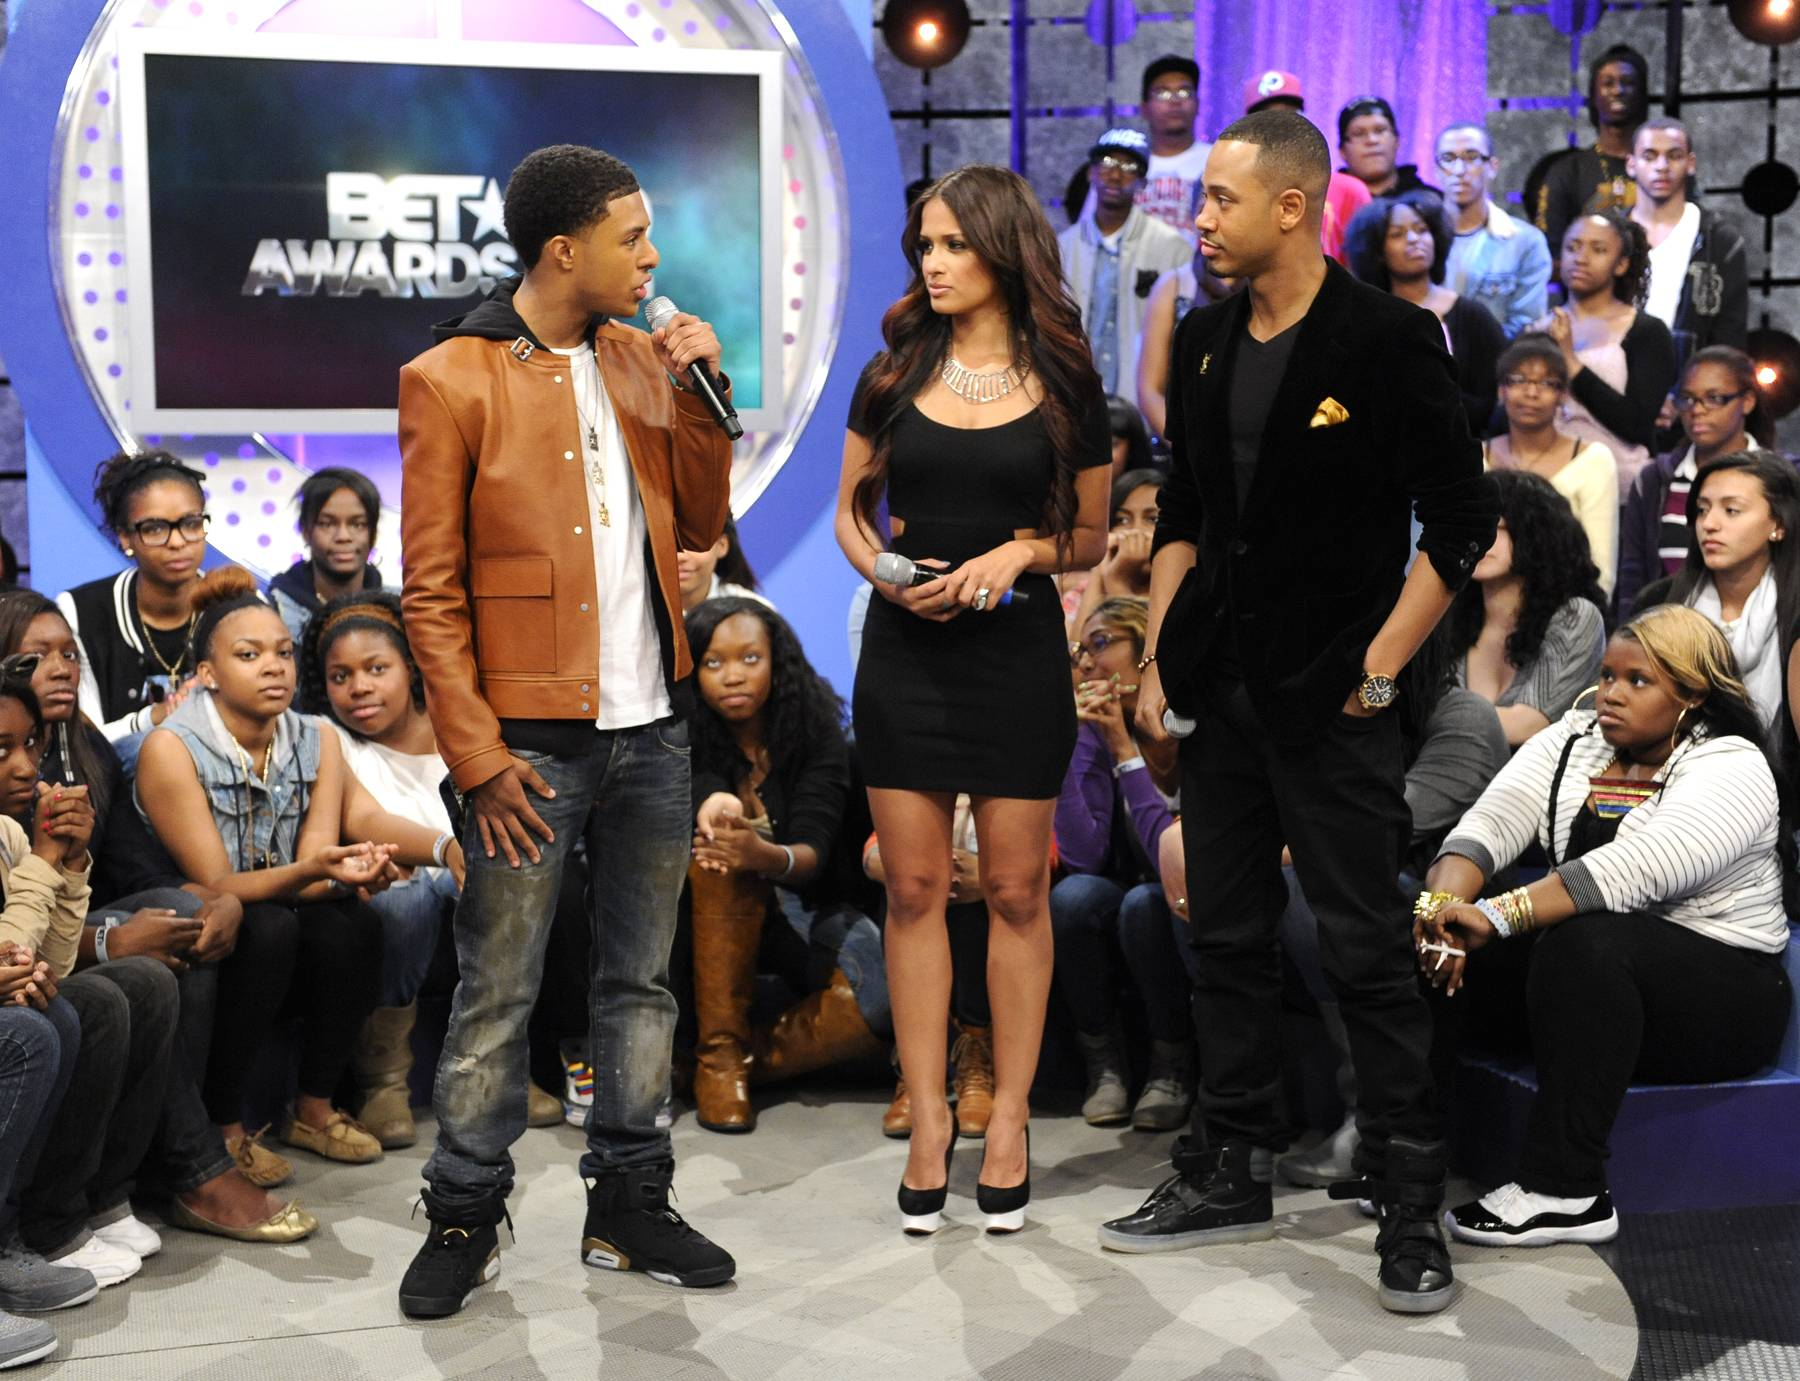 A Little Conversation - Diggy Simmons with Rocsi Diaz and Terrence J at 106 & Park, May 22, 2012. (Photo: John Ricard / BET)